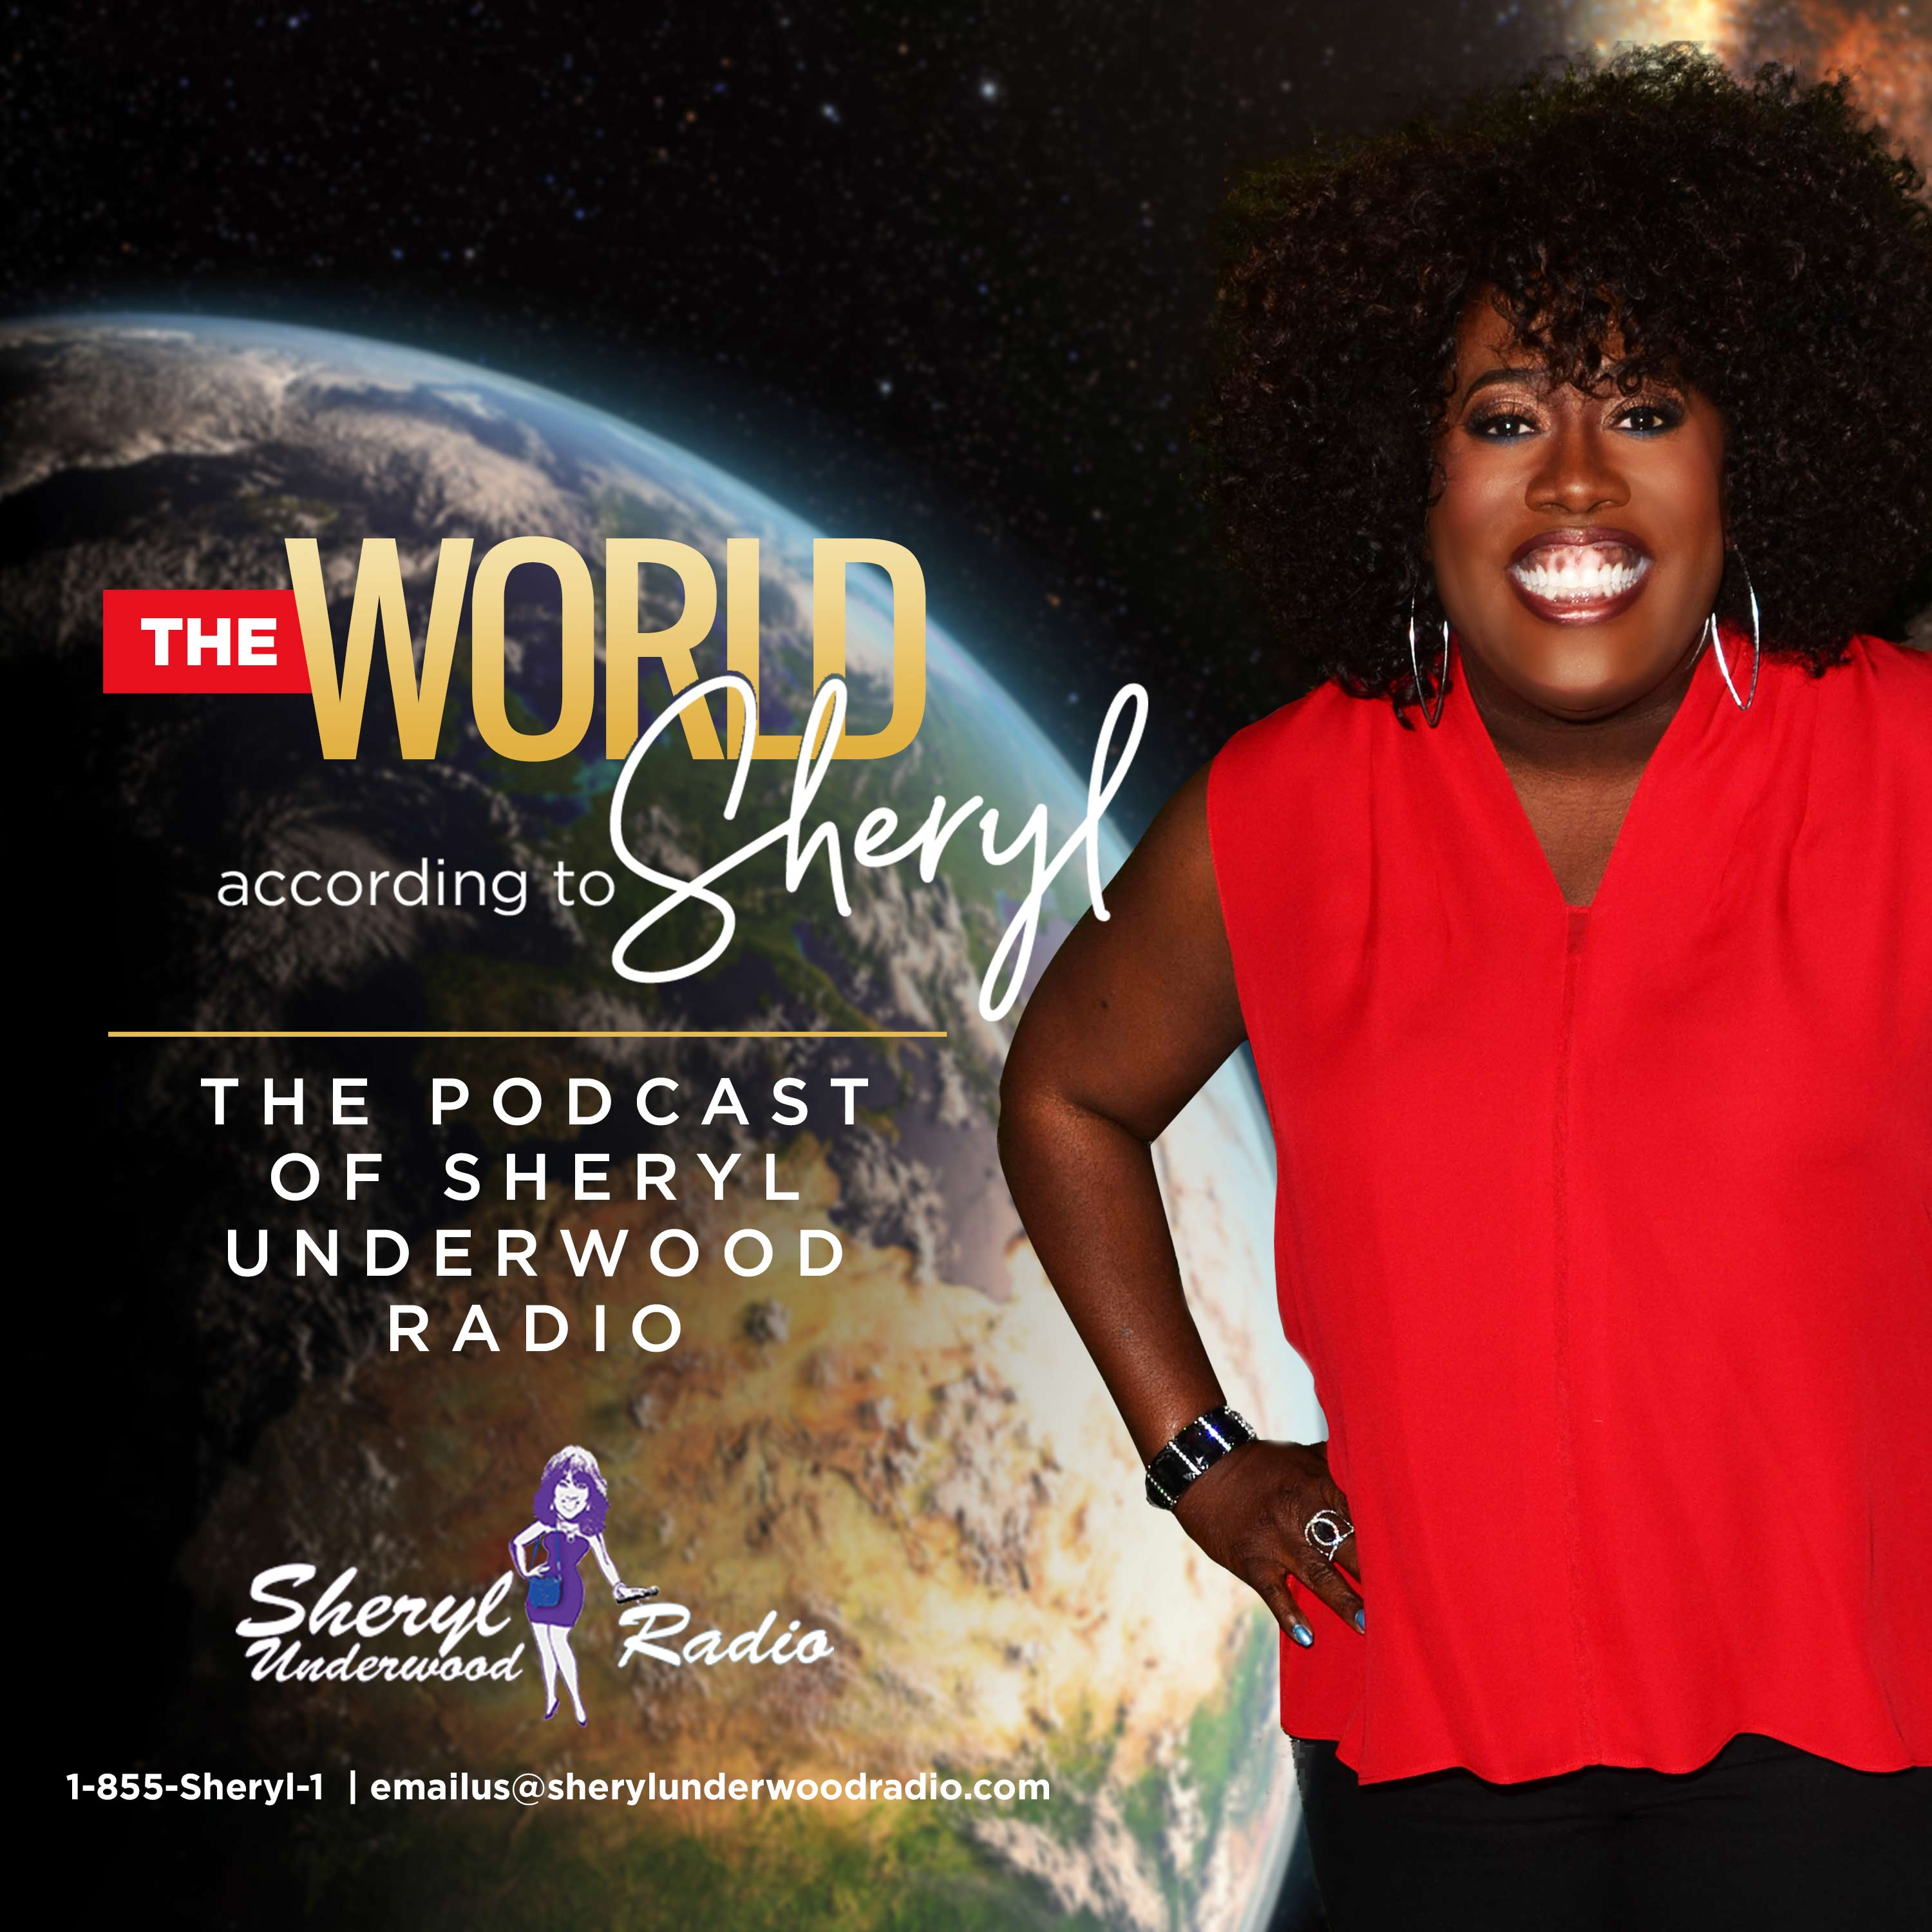 The Sheryl Underwood Podcast Ep. 6 show art